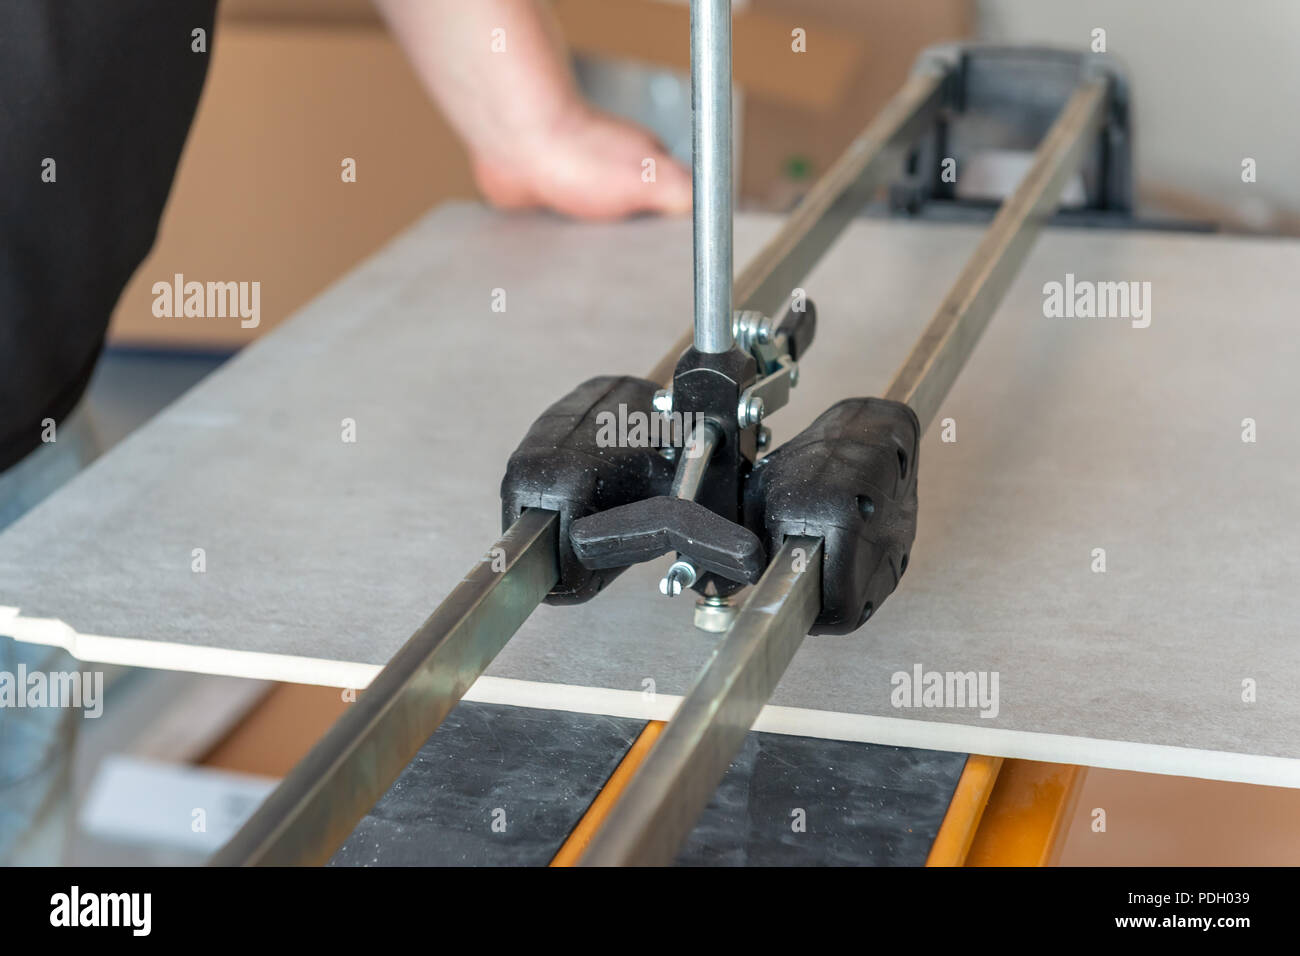 https www alamy com tile cutter machine worker cutting ceramic floor tiles tile with tile cutter image214888221 html